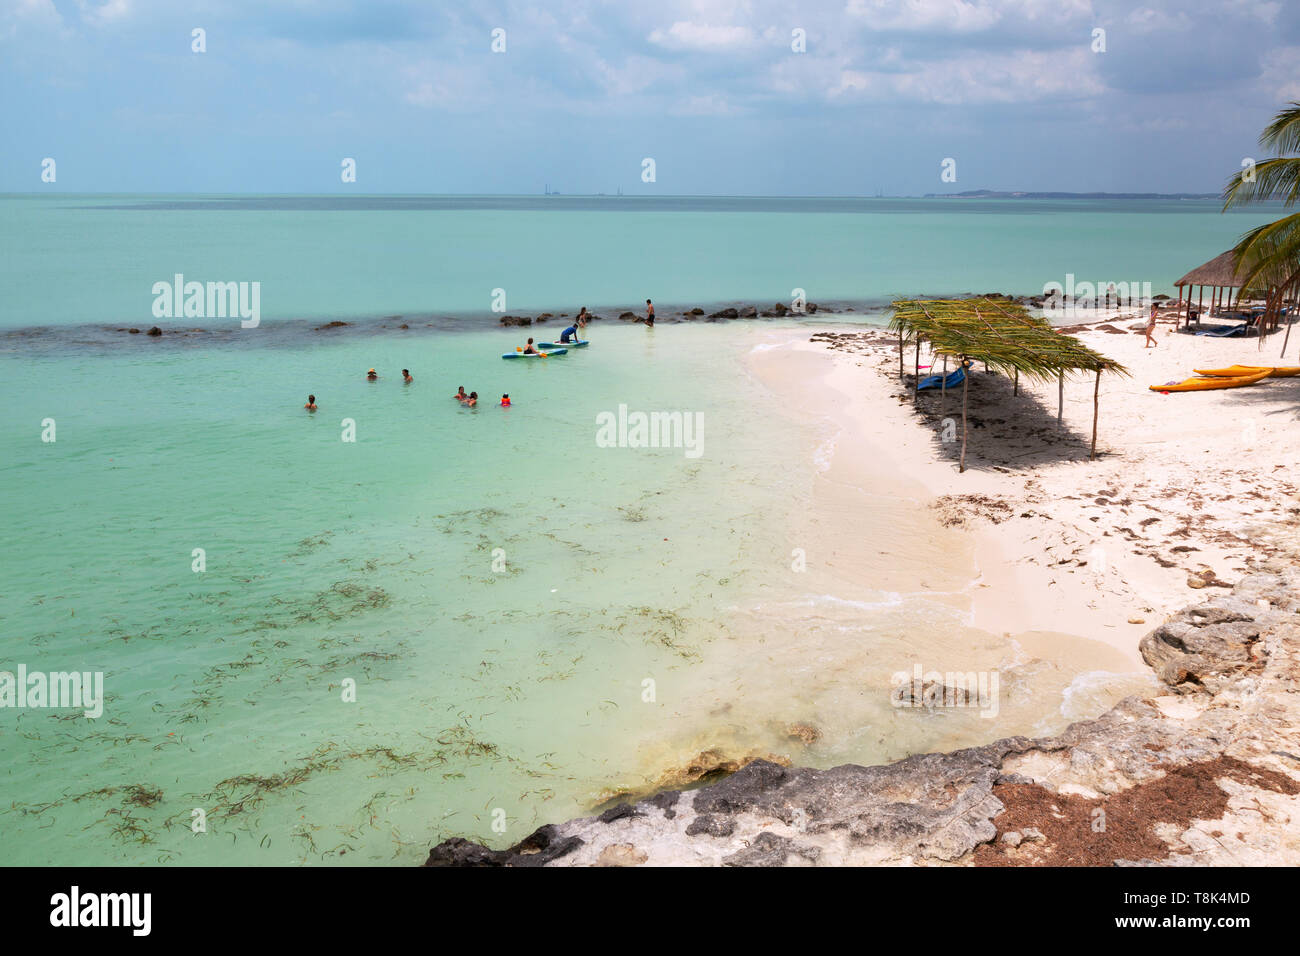 Mexico beach - tourists on holiday on the beach at Campeche, Yucatan, Mexico, Gulf of Mexico, Stock Photo